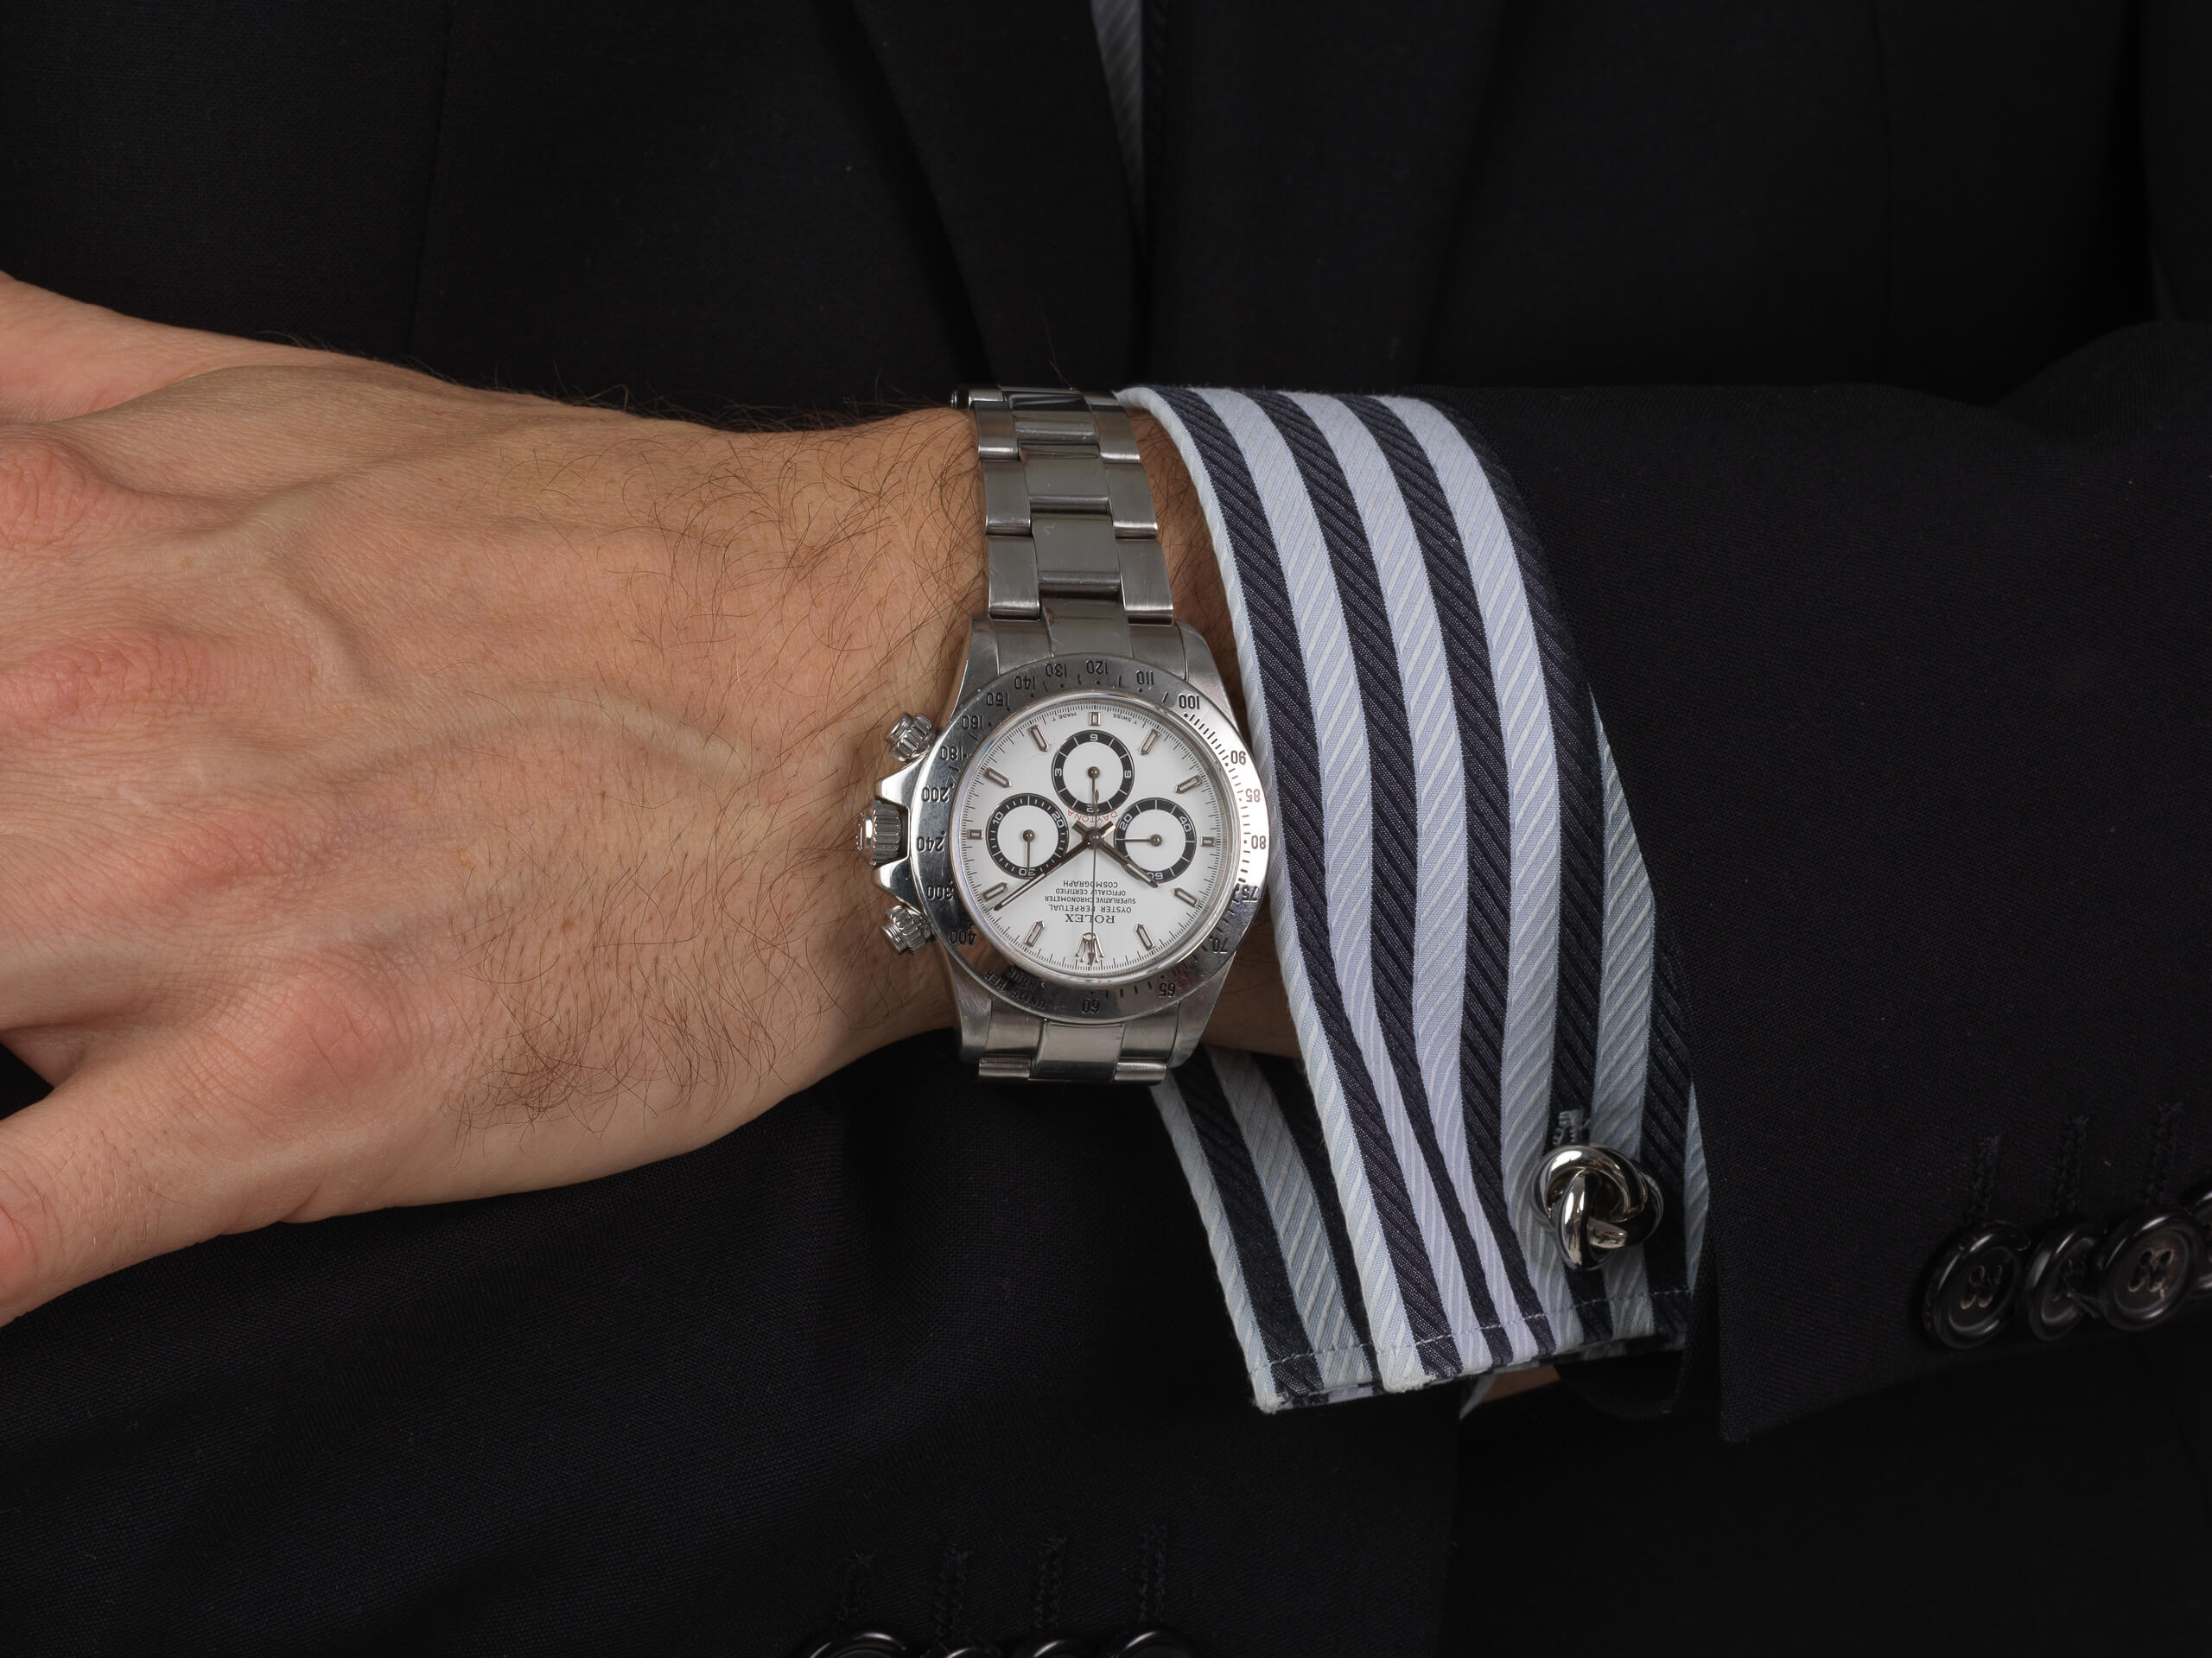 Sold,Rolex Daytona 16520 1999 U,series box and papers 1 owner